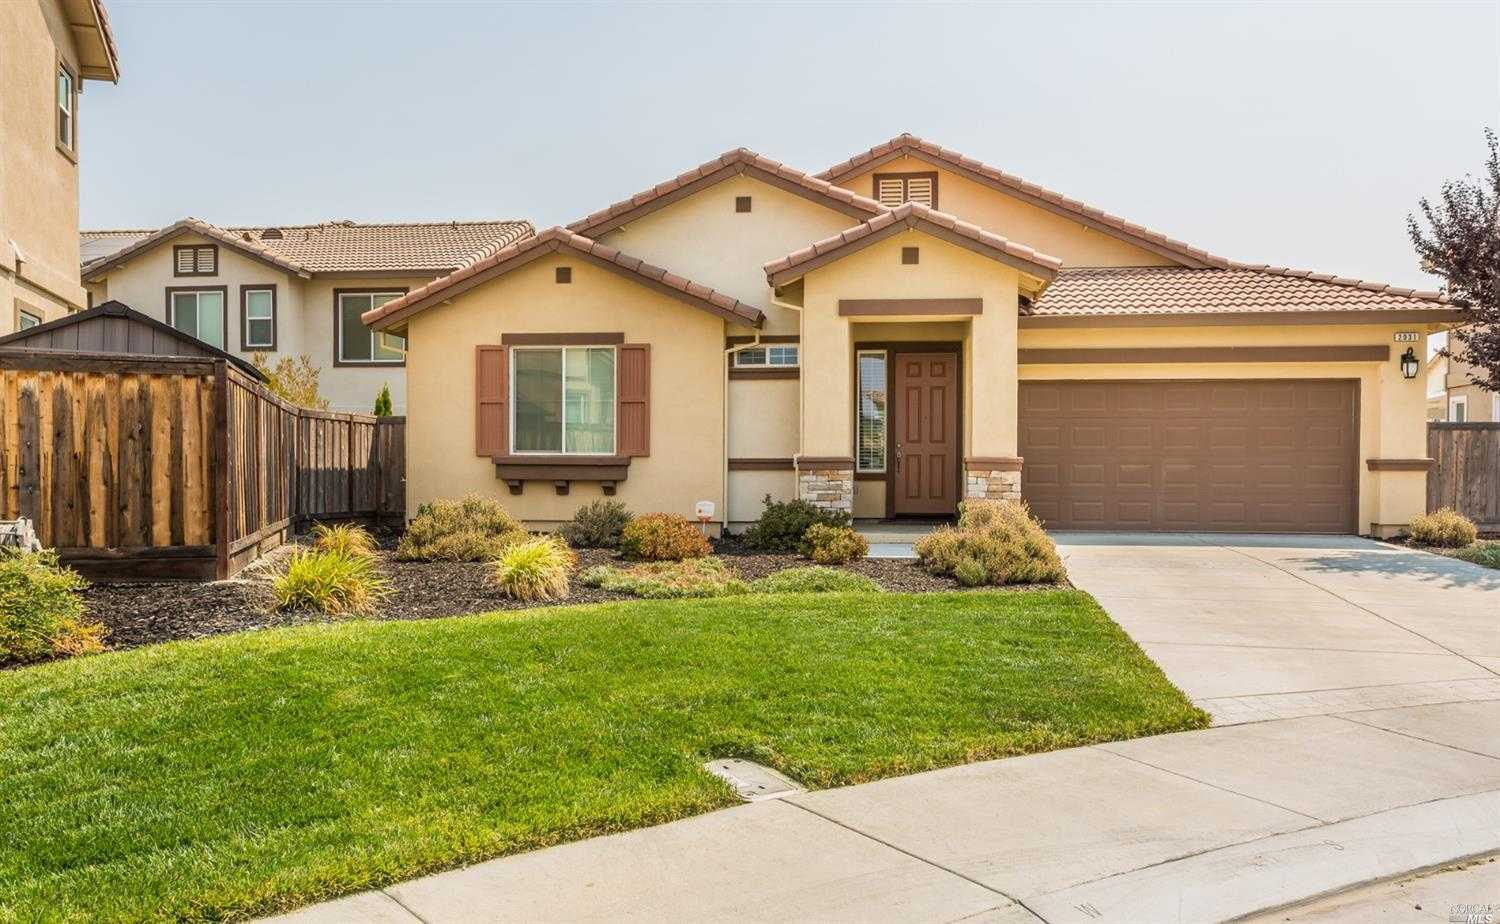 $535,000 - 3Br/2Ba -  for Sale in Vacaville